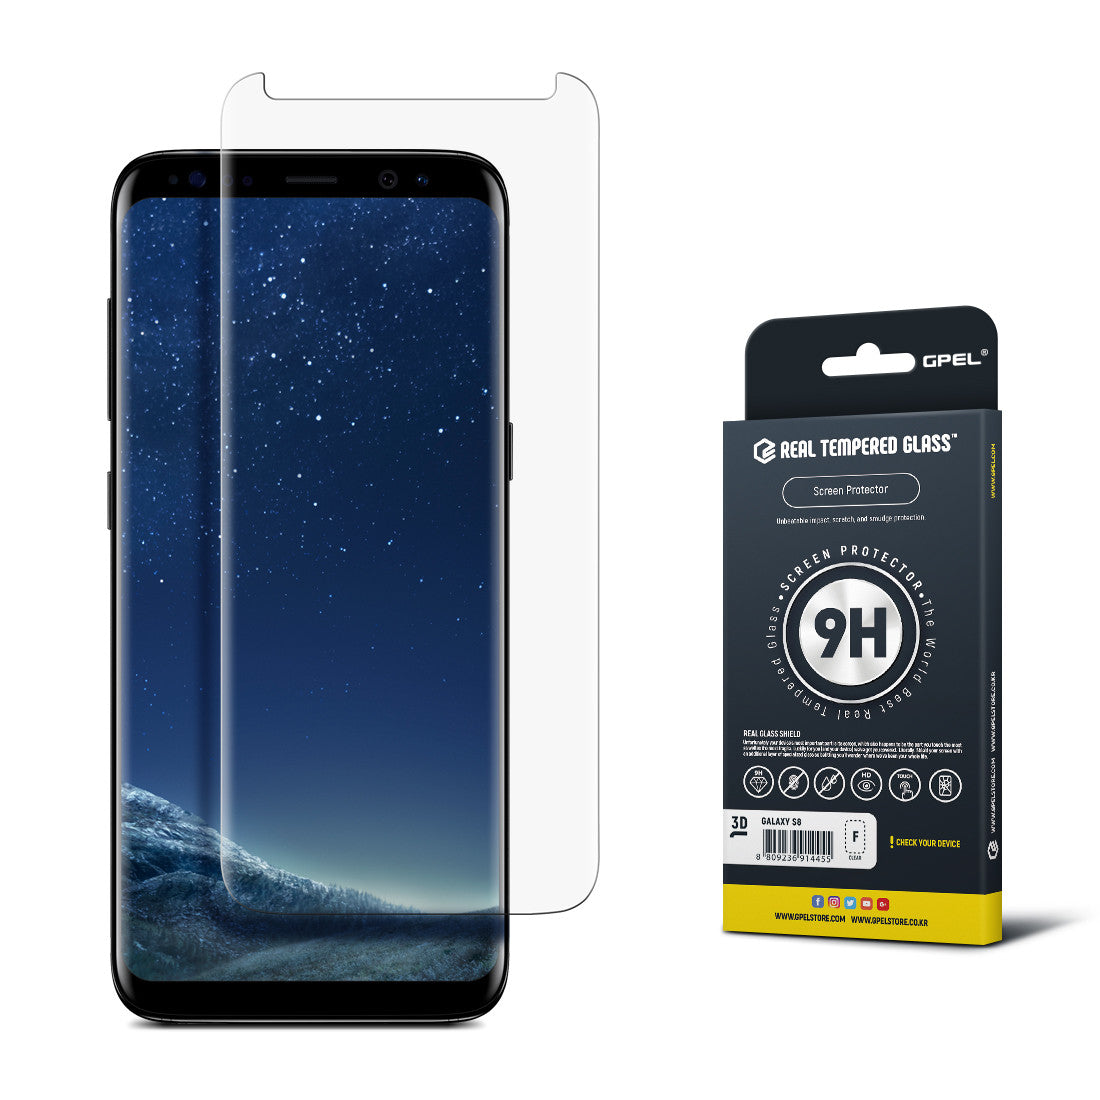 new product 20437 f149c Galaxy S8 - Full Coverage Tempered Glass Screen Protector